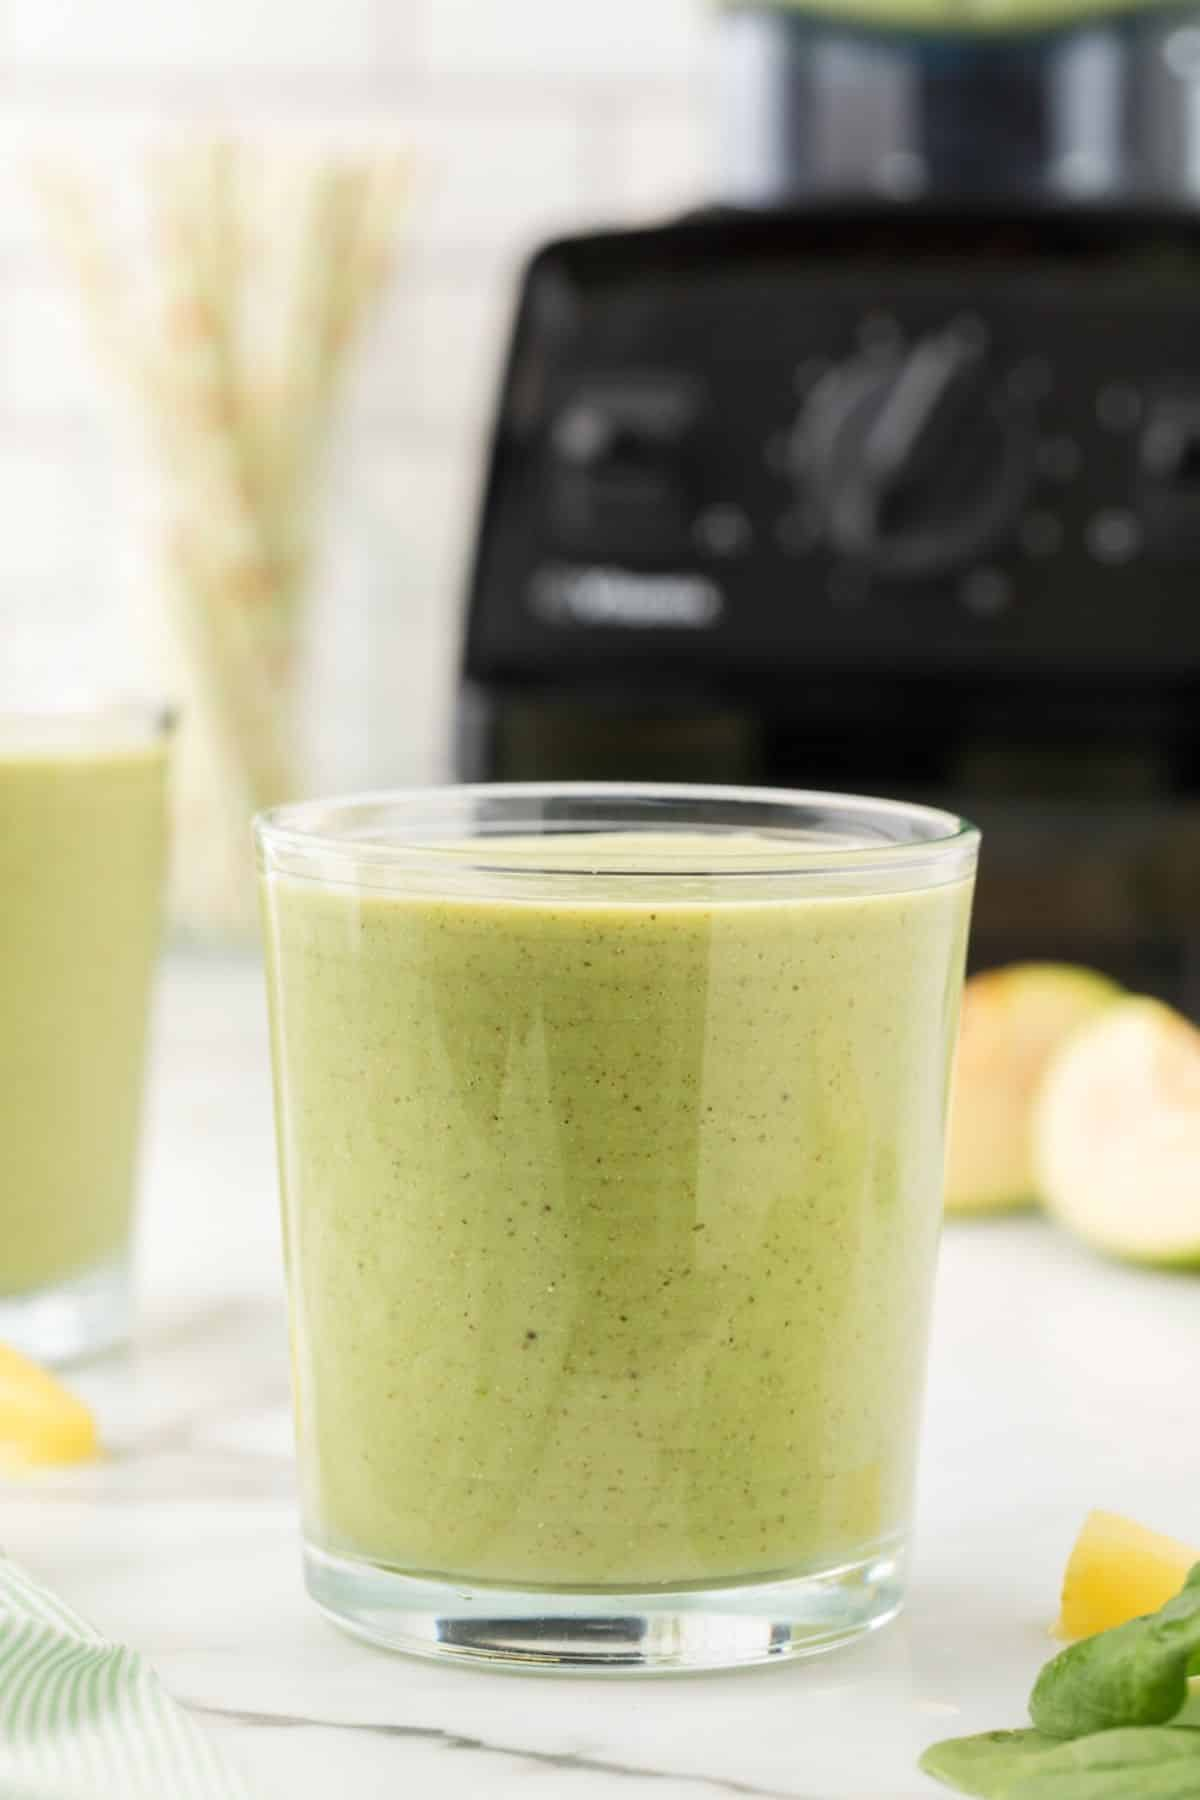 glass of green smoothie on a table